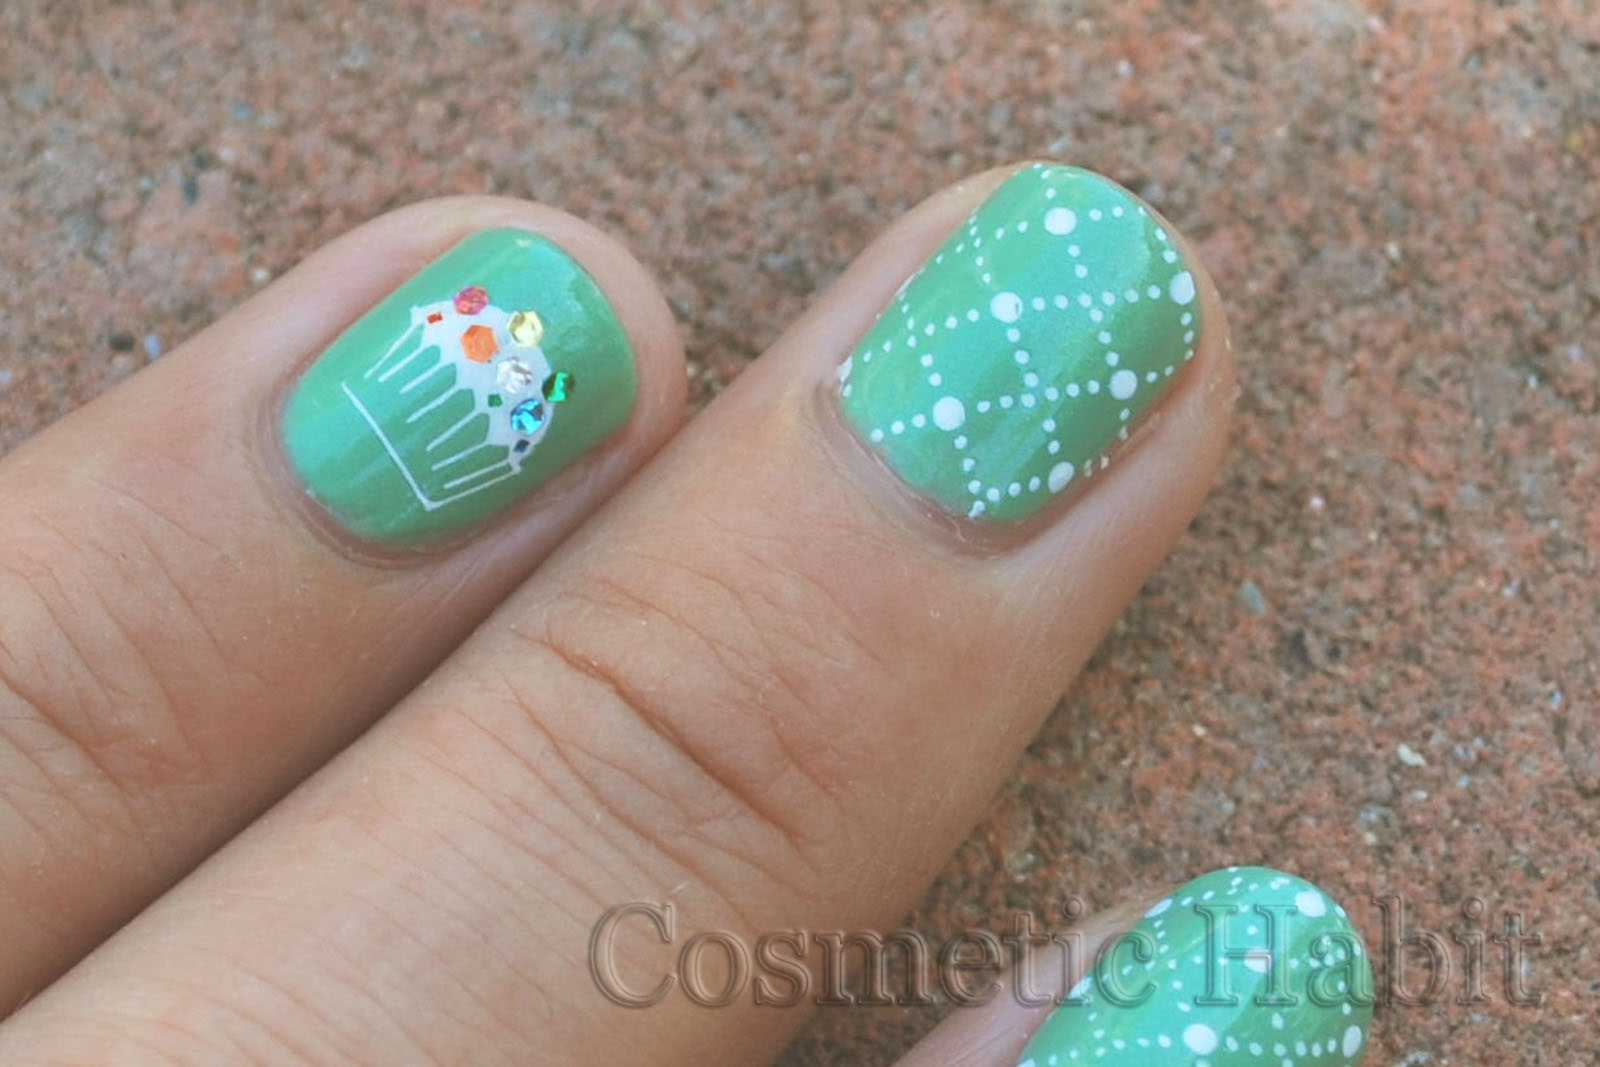 cupcake nail designs ideas-23